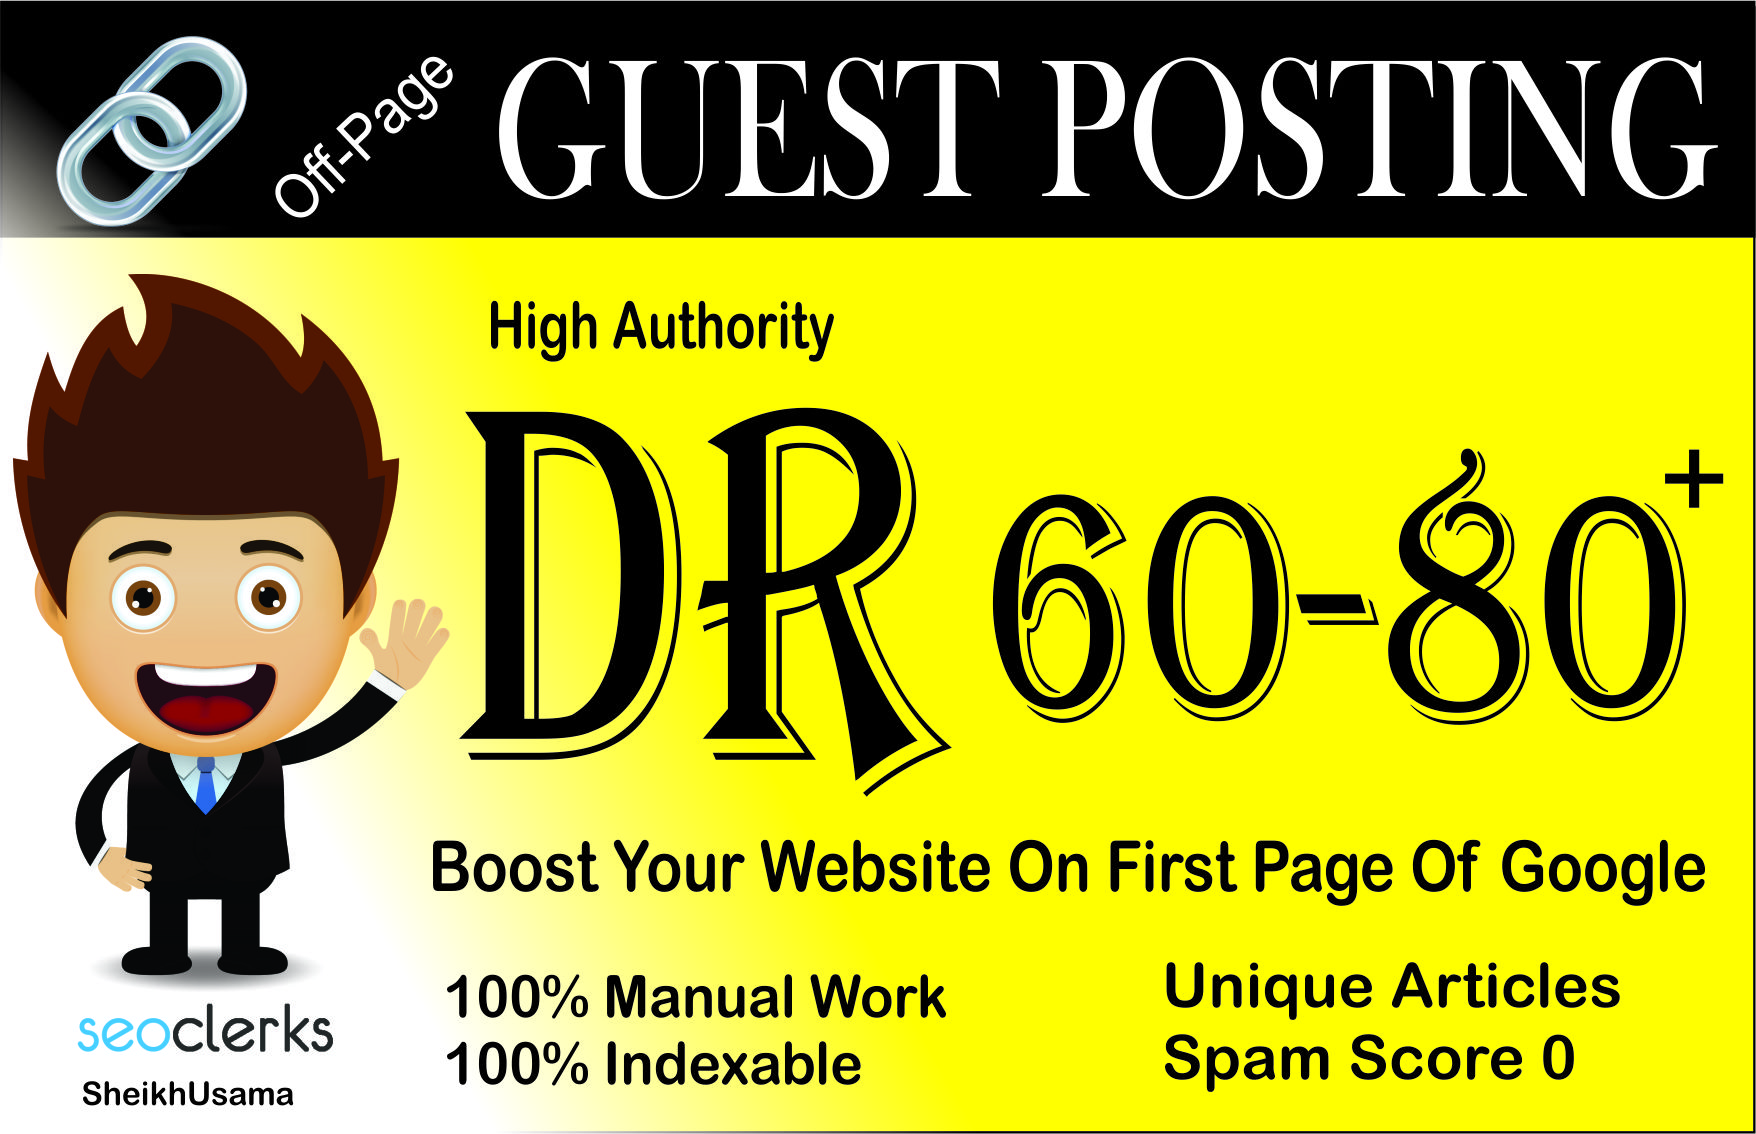 Guest Posting Using 2 High DR 60 to 80 Permanent PBN Backlinks